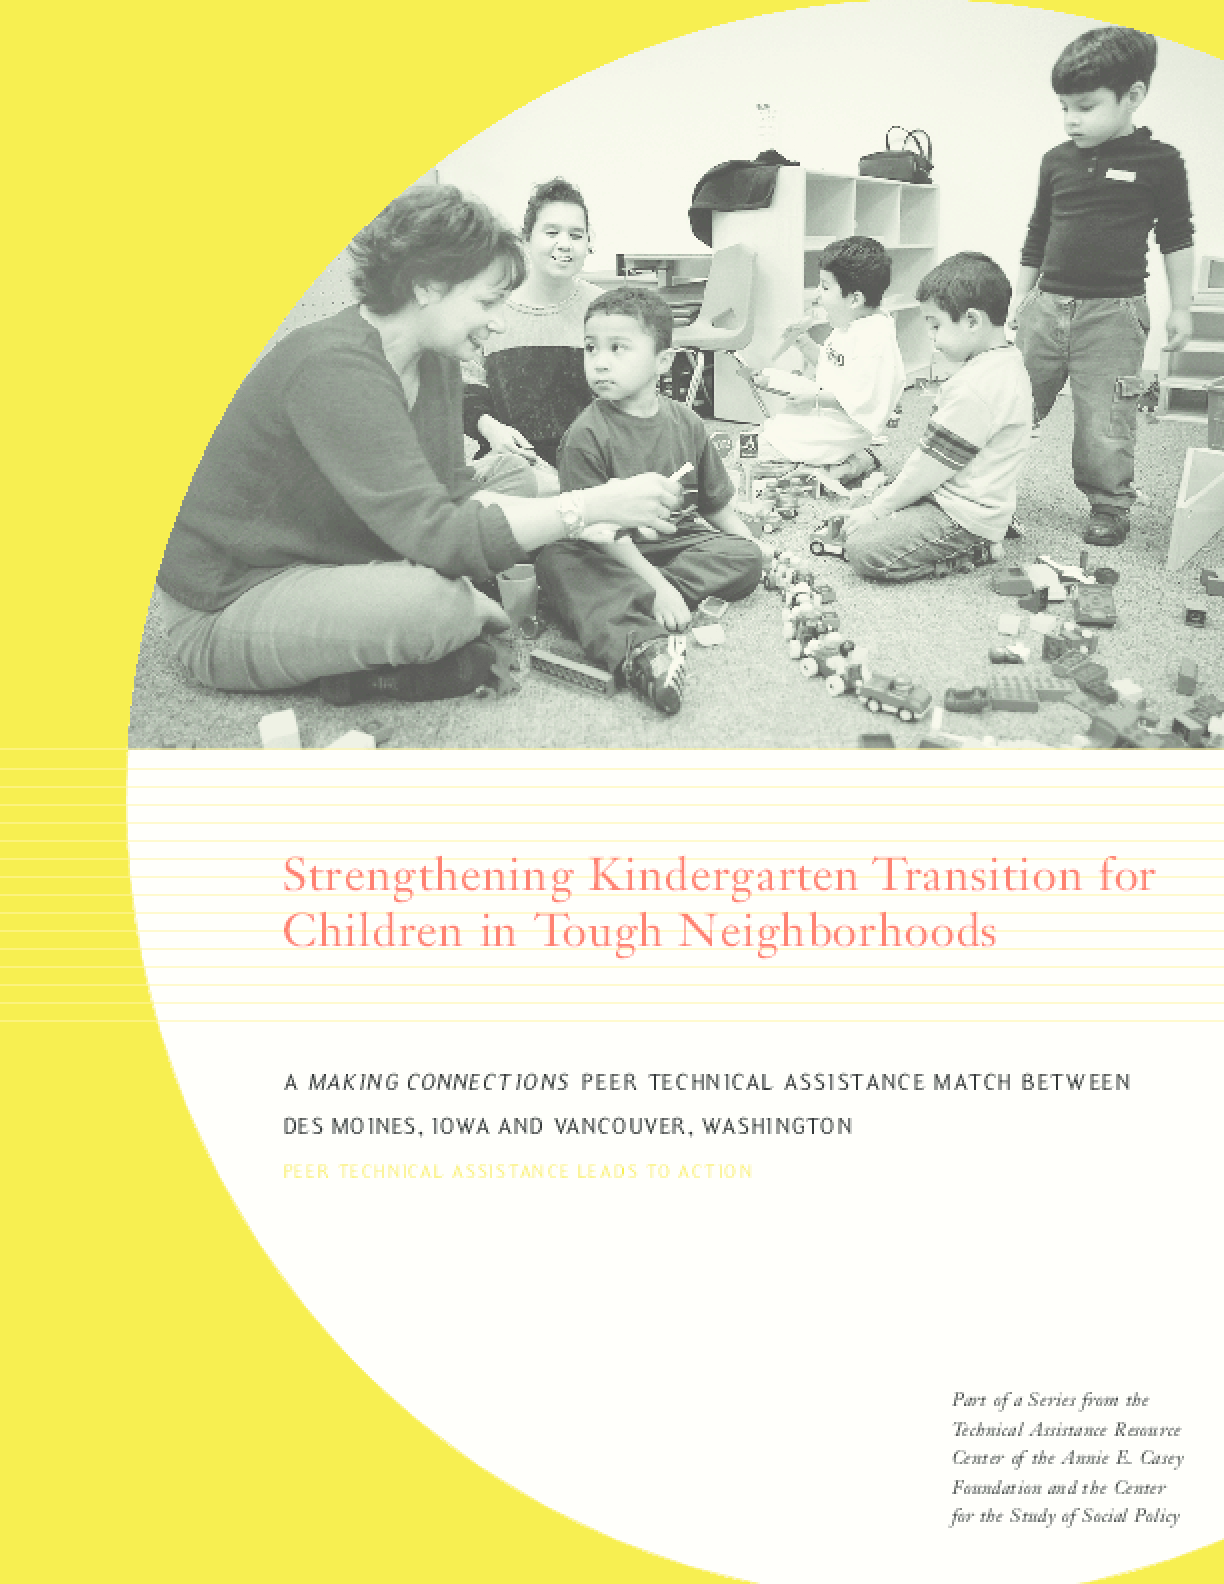 Strengthening Kindergarten Transition for Children in Tough Neighborhoods